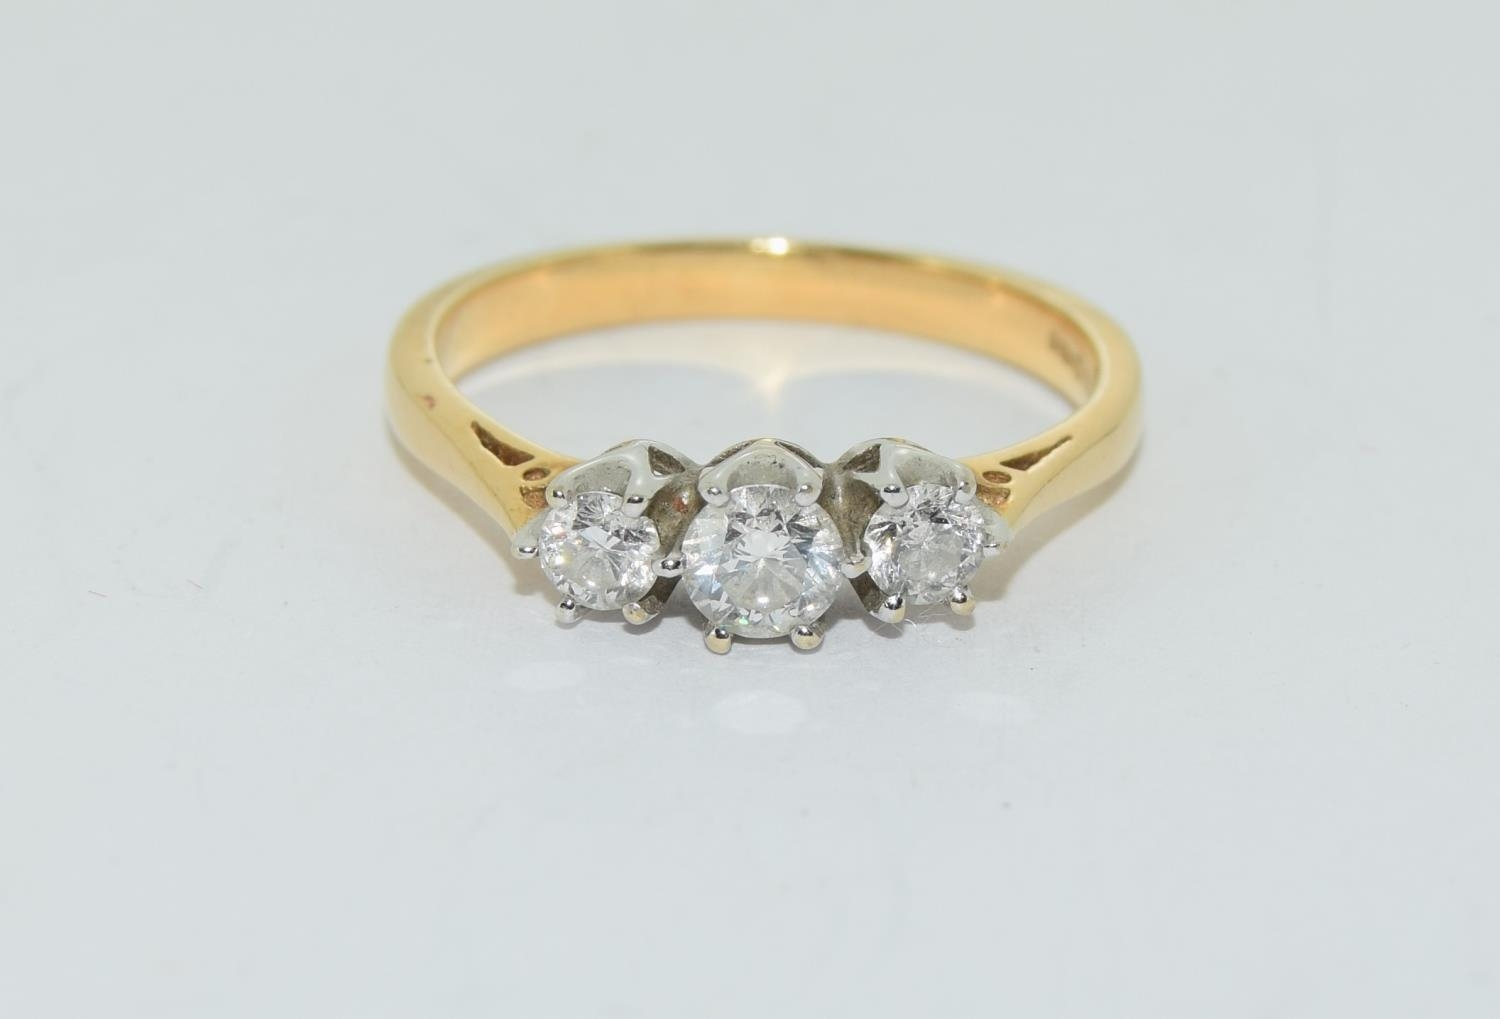 Diamond 3 stone aprox 0.50 points 18ct gold ring size O. - Image 5 of 5